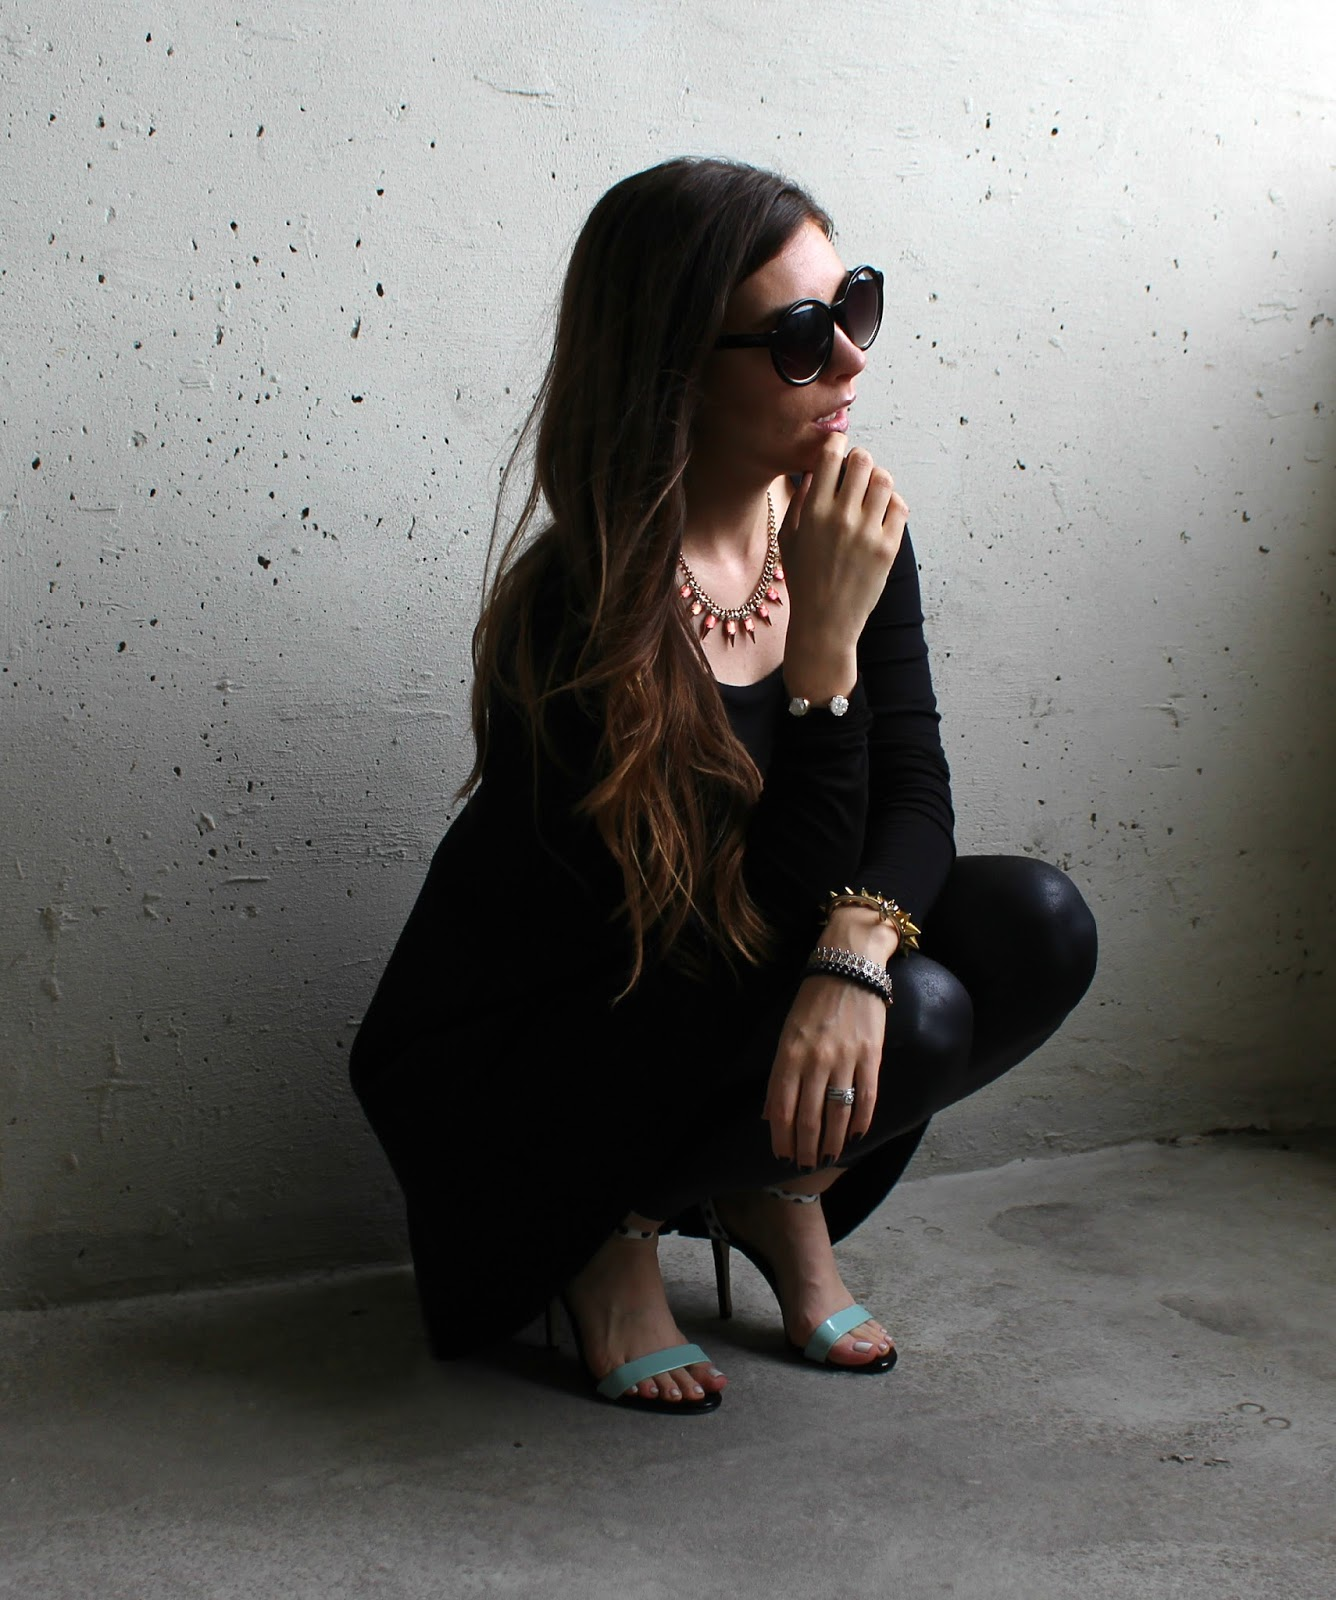 Strappy heels, black cotton dress, black leather pants, oversize sun glasses